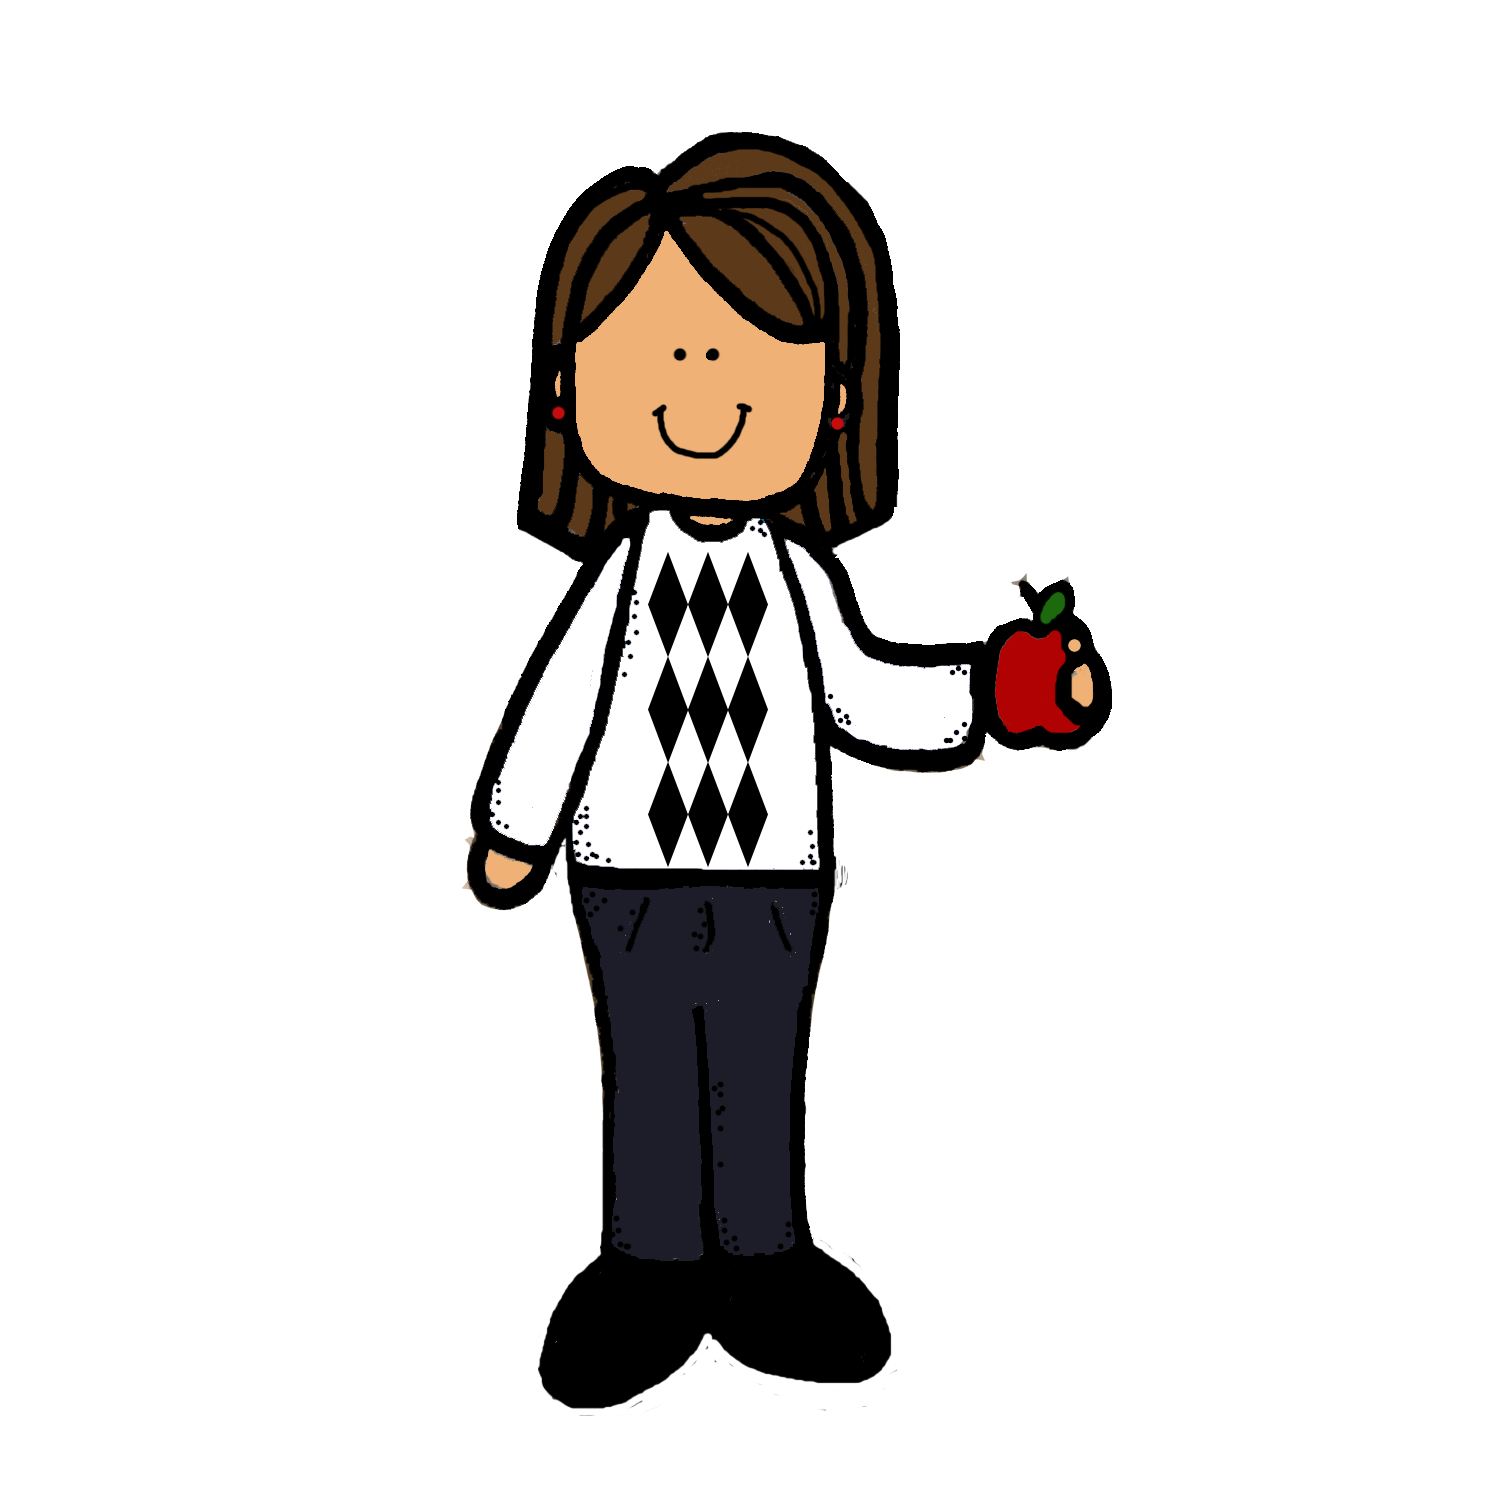 night out clip art - photo #16